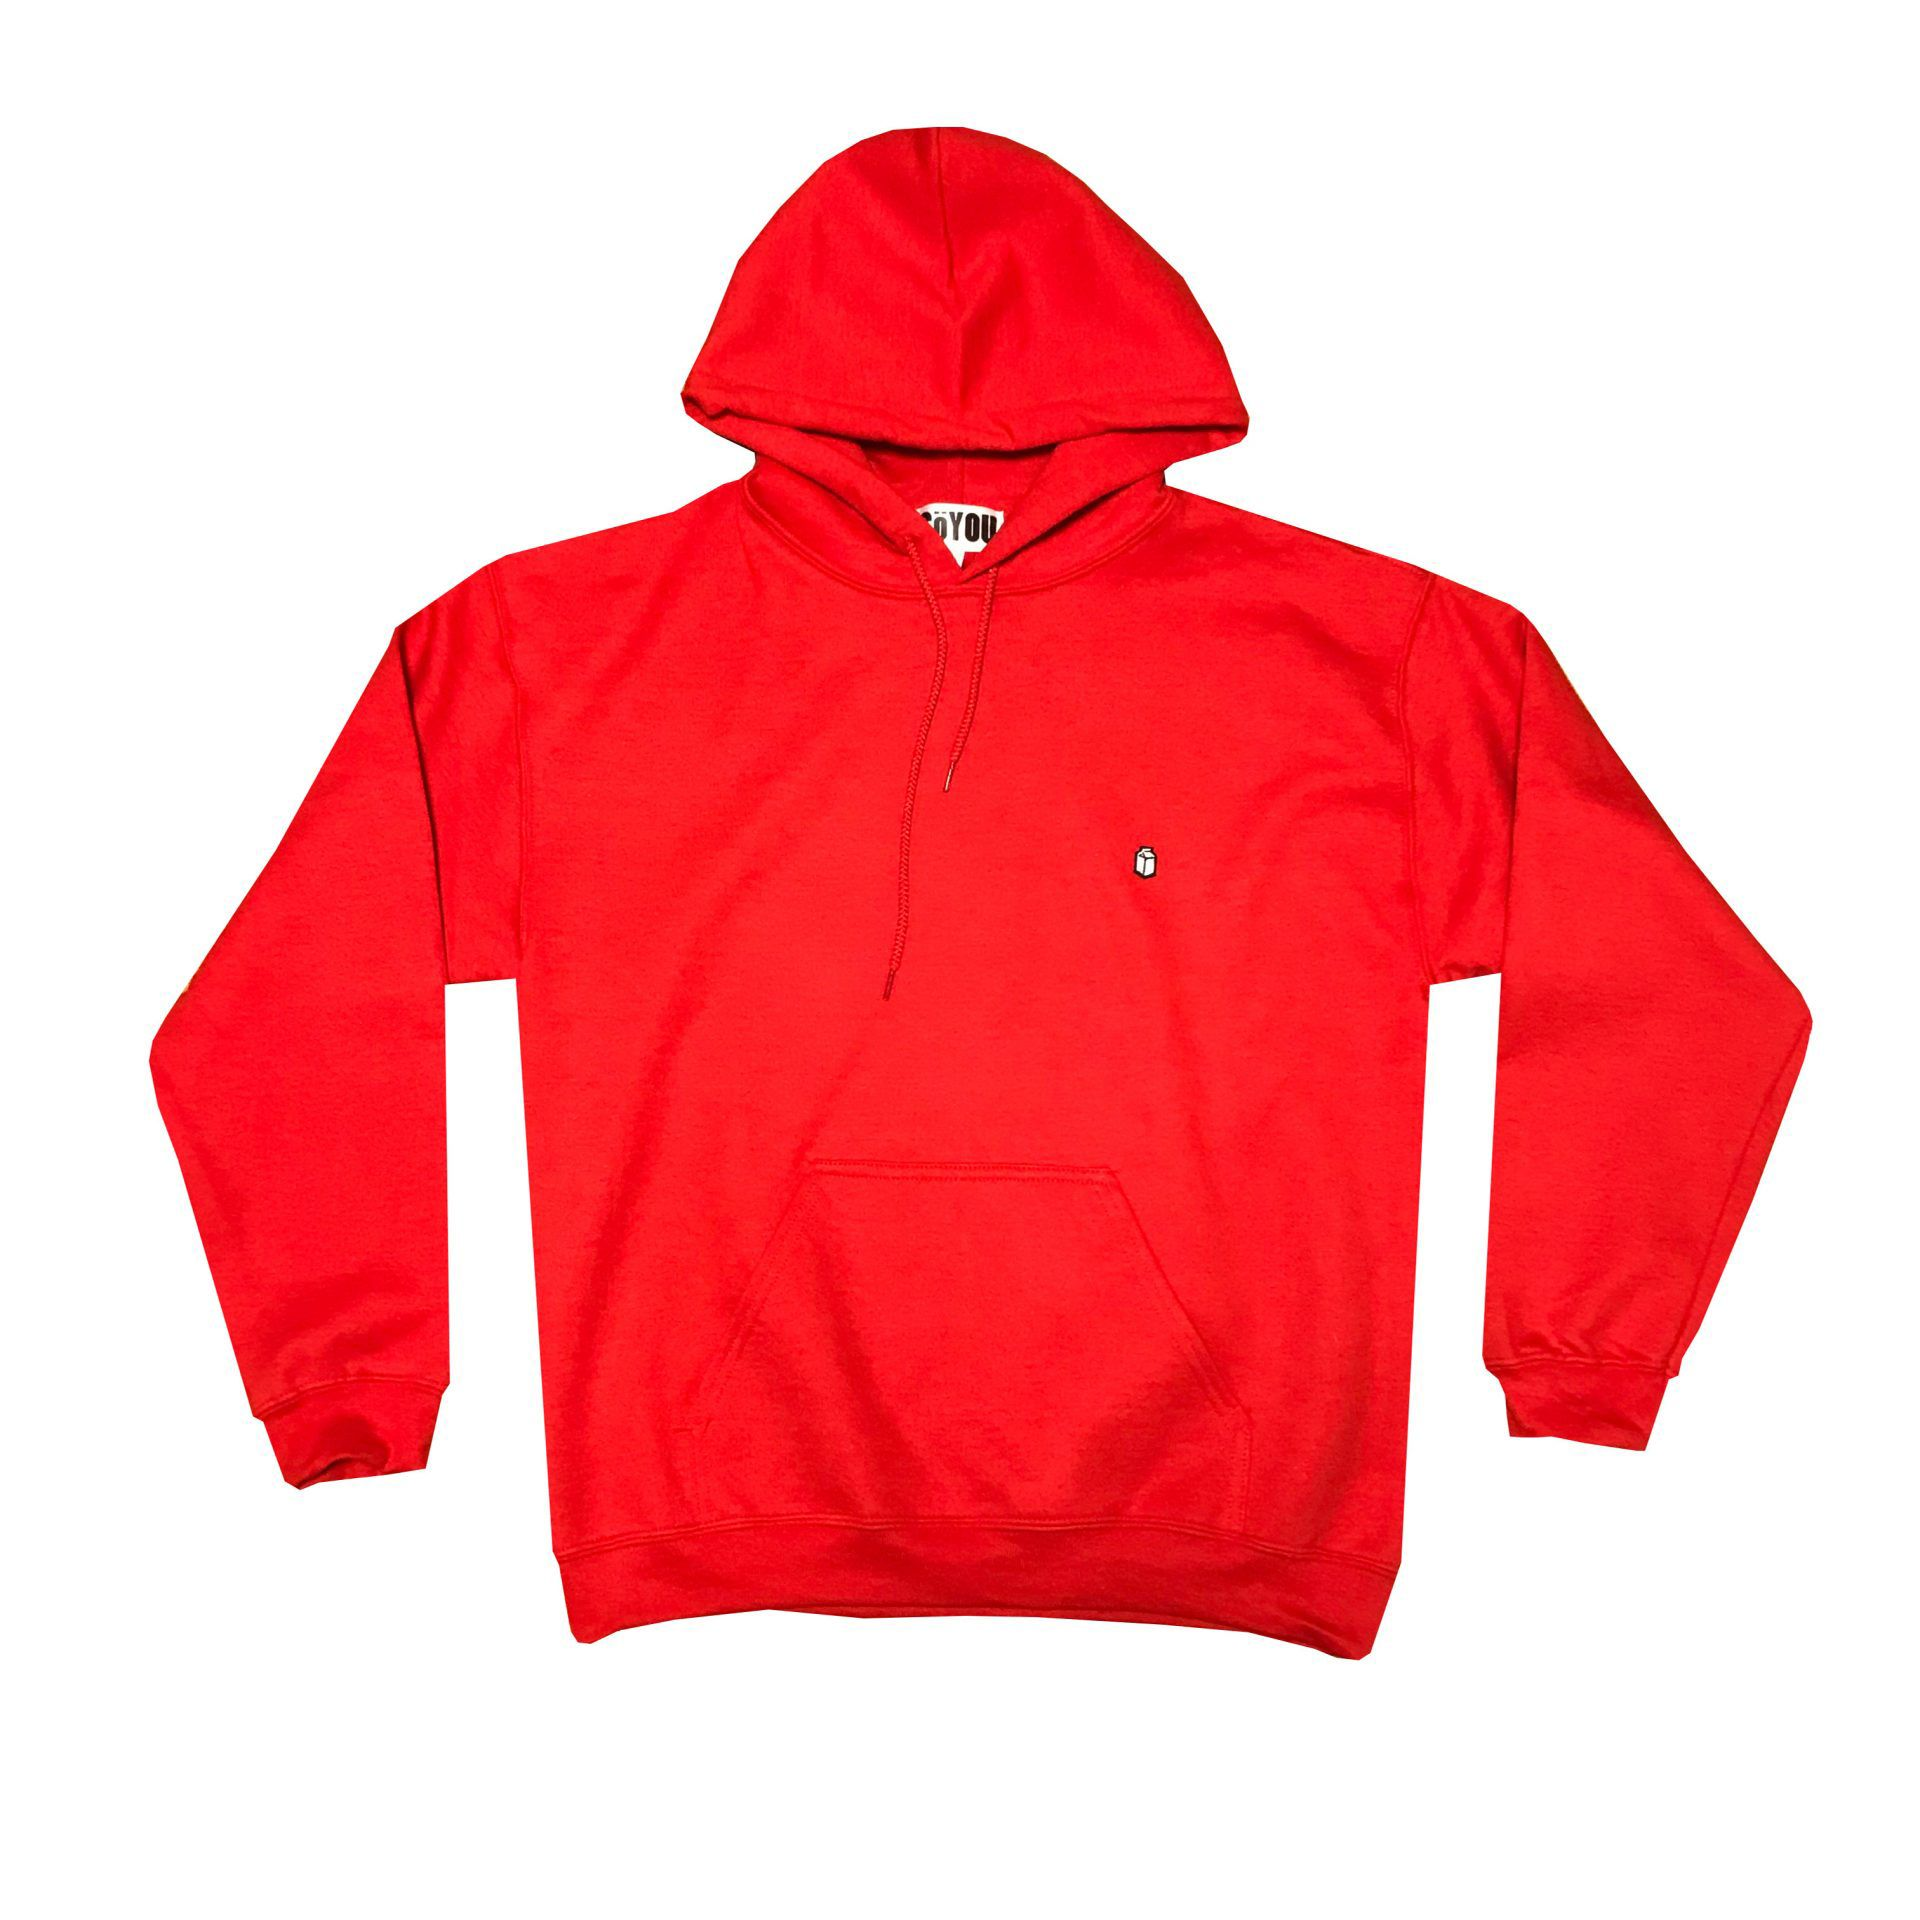 SoYou Clothing Basics Hoodie in Red Canoe